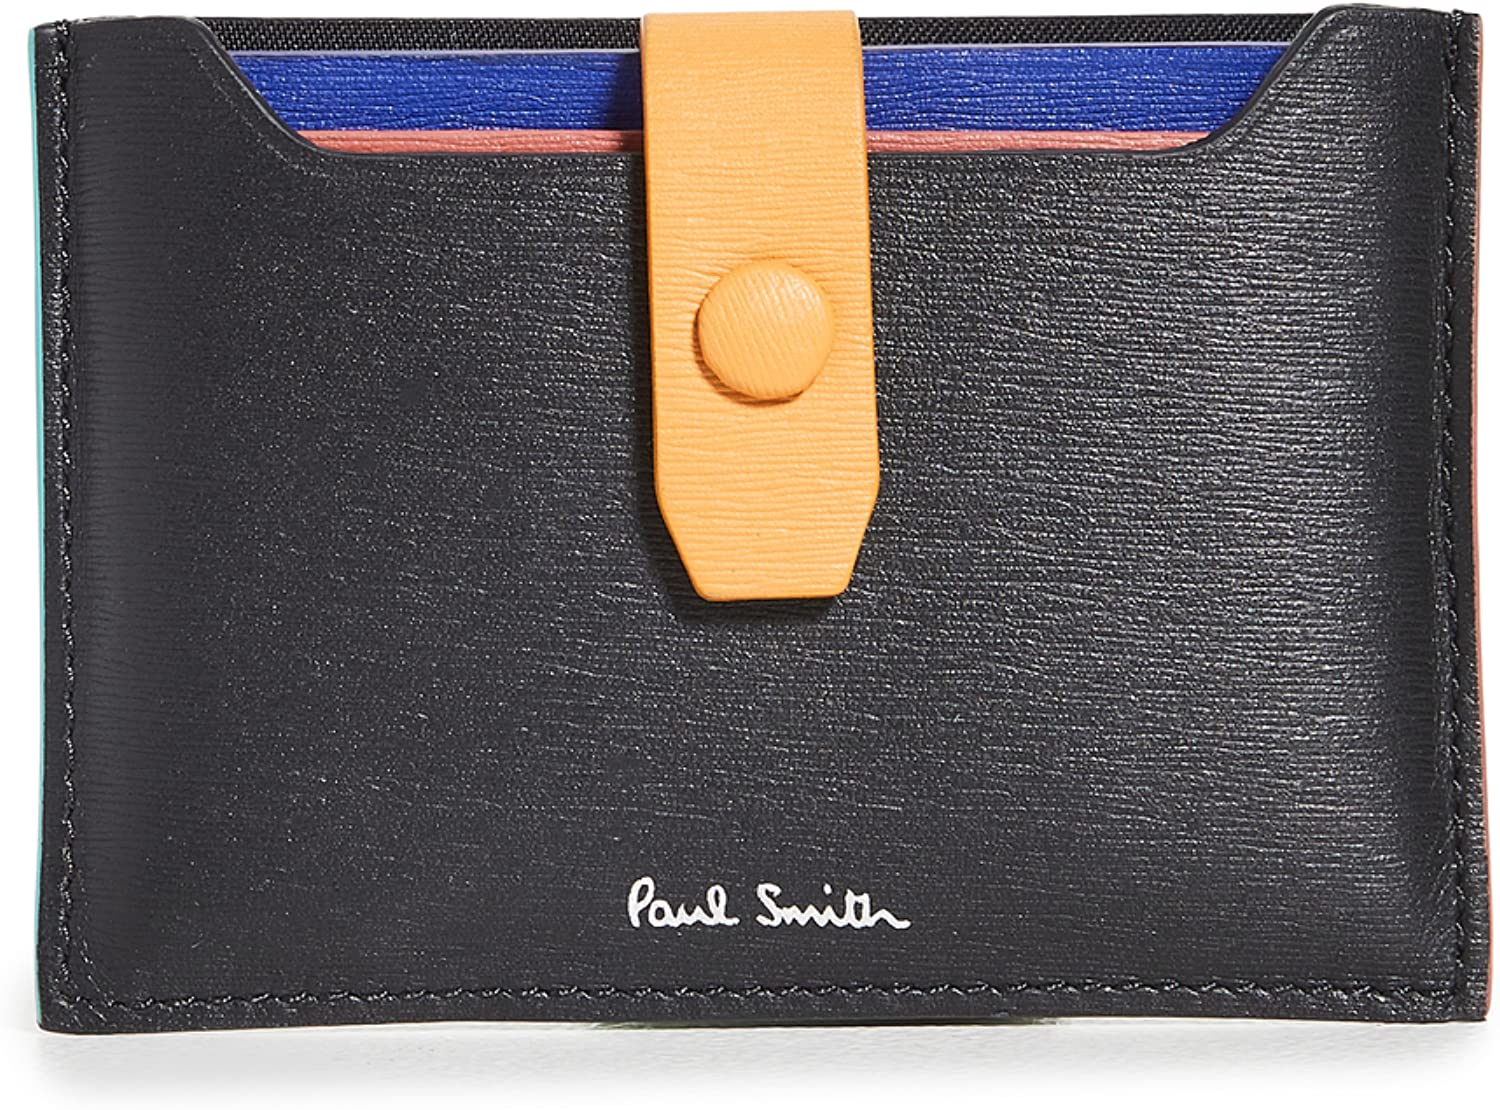 Paul Smith Men's Outstanding Pull 67% OFF of fixed price Out Case Card